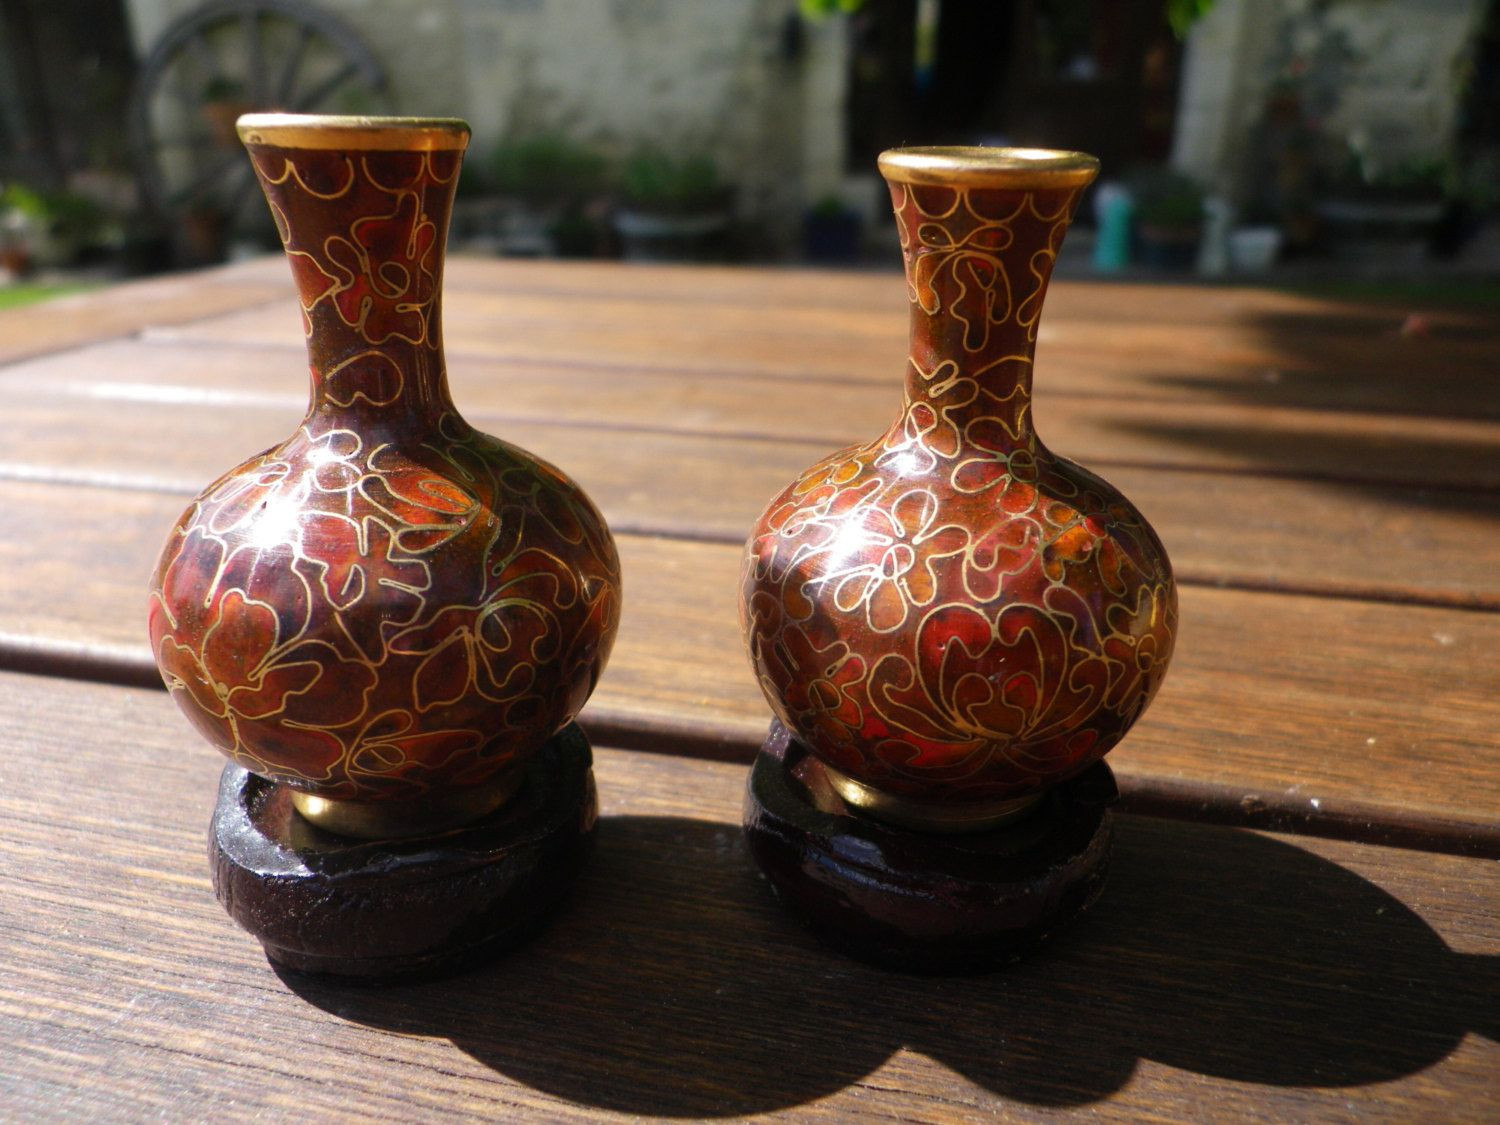 antique japanese cloisonne vases of red vase set images miniature cloisonne vase set brown enamel with within miniature cloisonne vase set brown enamel with red flowers on brass